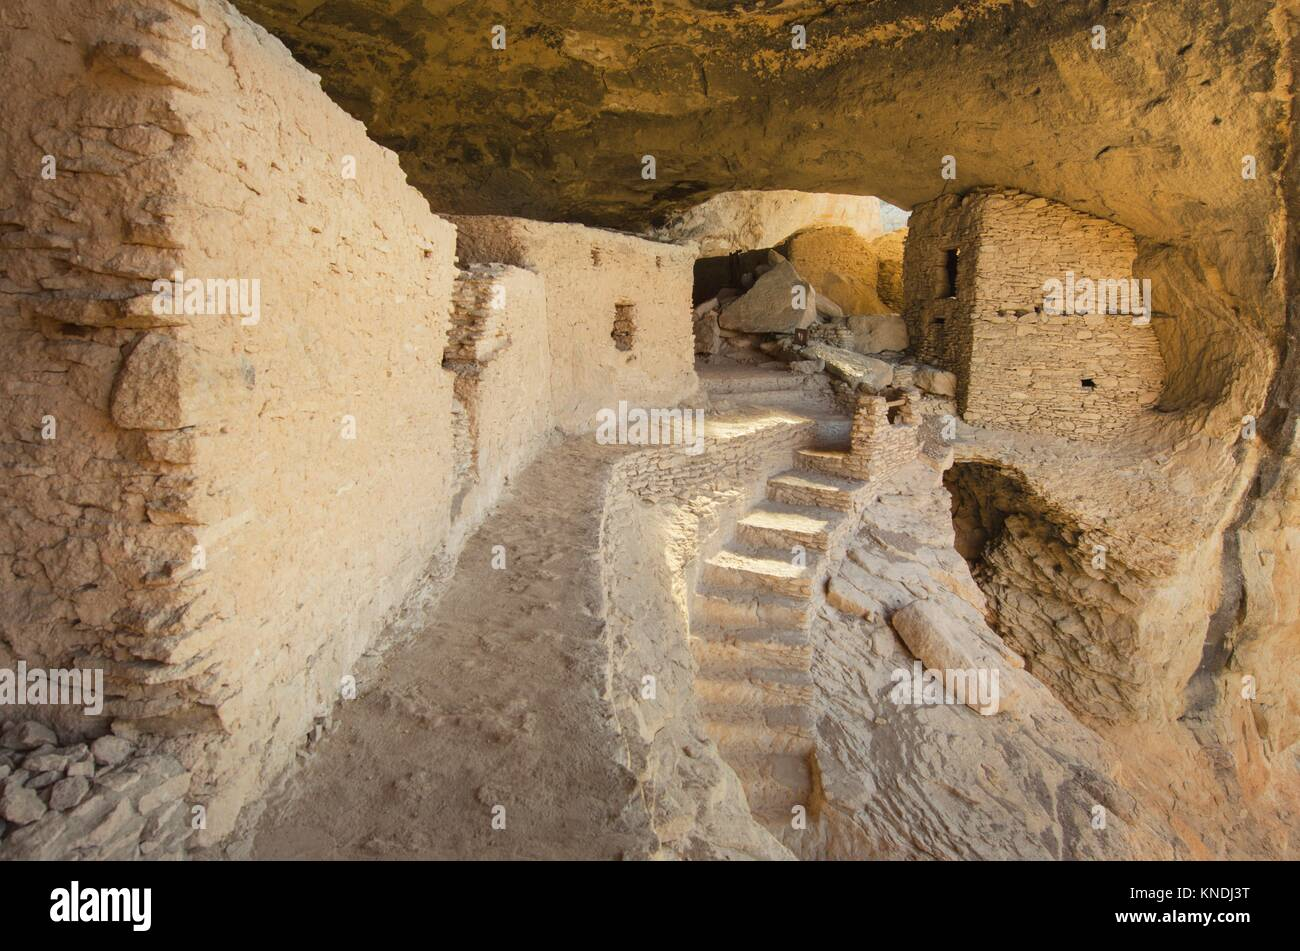 Gila Cliff Dwellings National Monument. Stock Photo